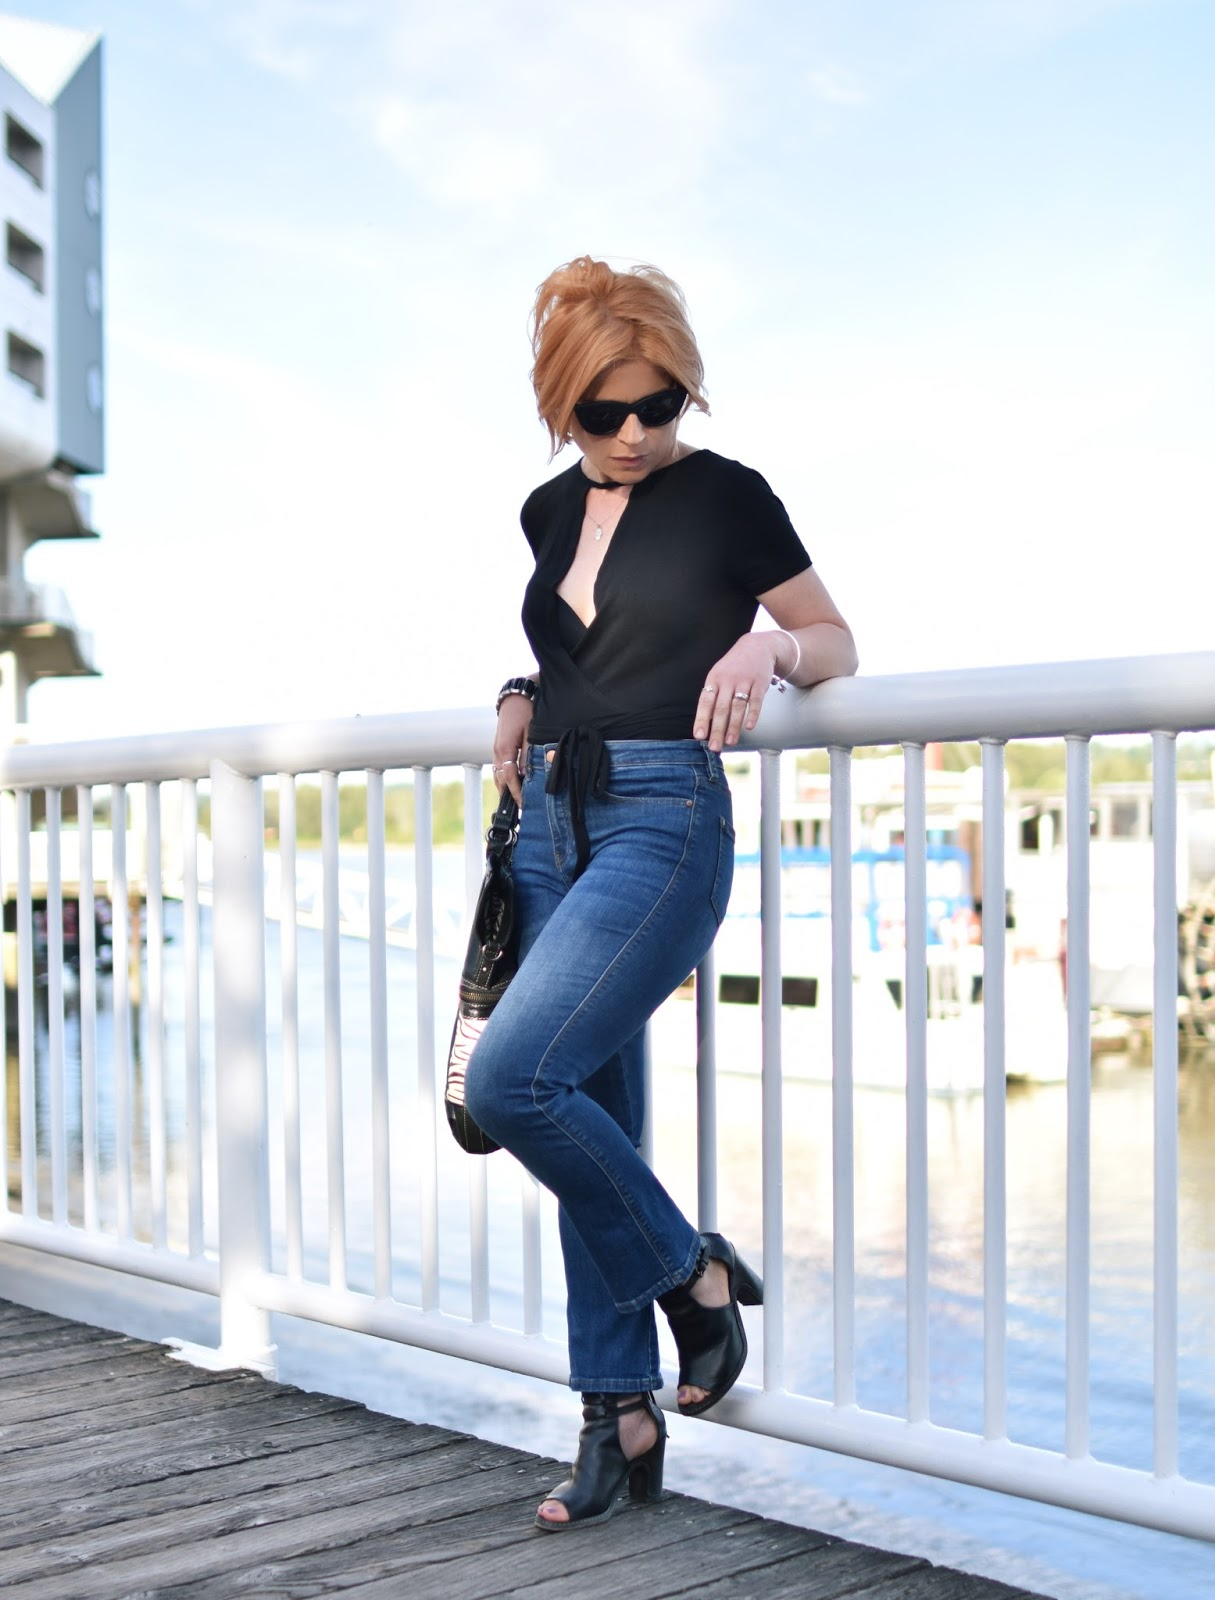 styling a short-sleeved wrap top with cropped flare jeans, cut-out booties, and cat-eye sunglasses